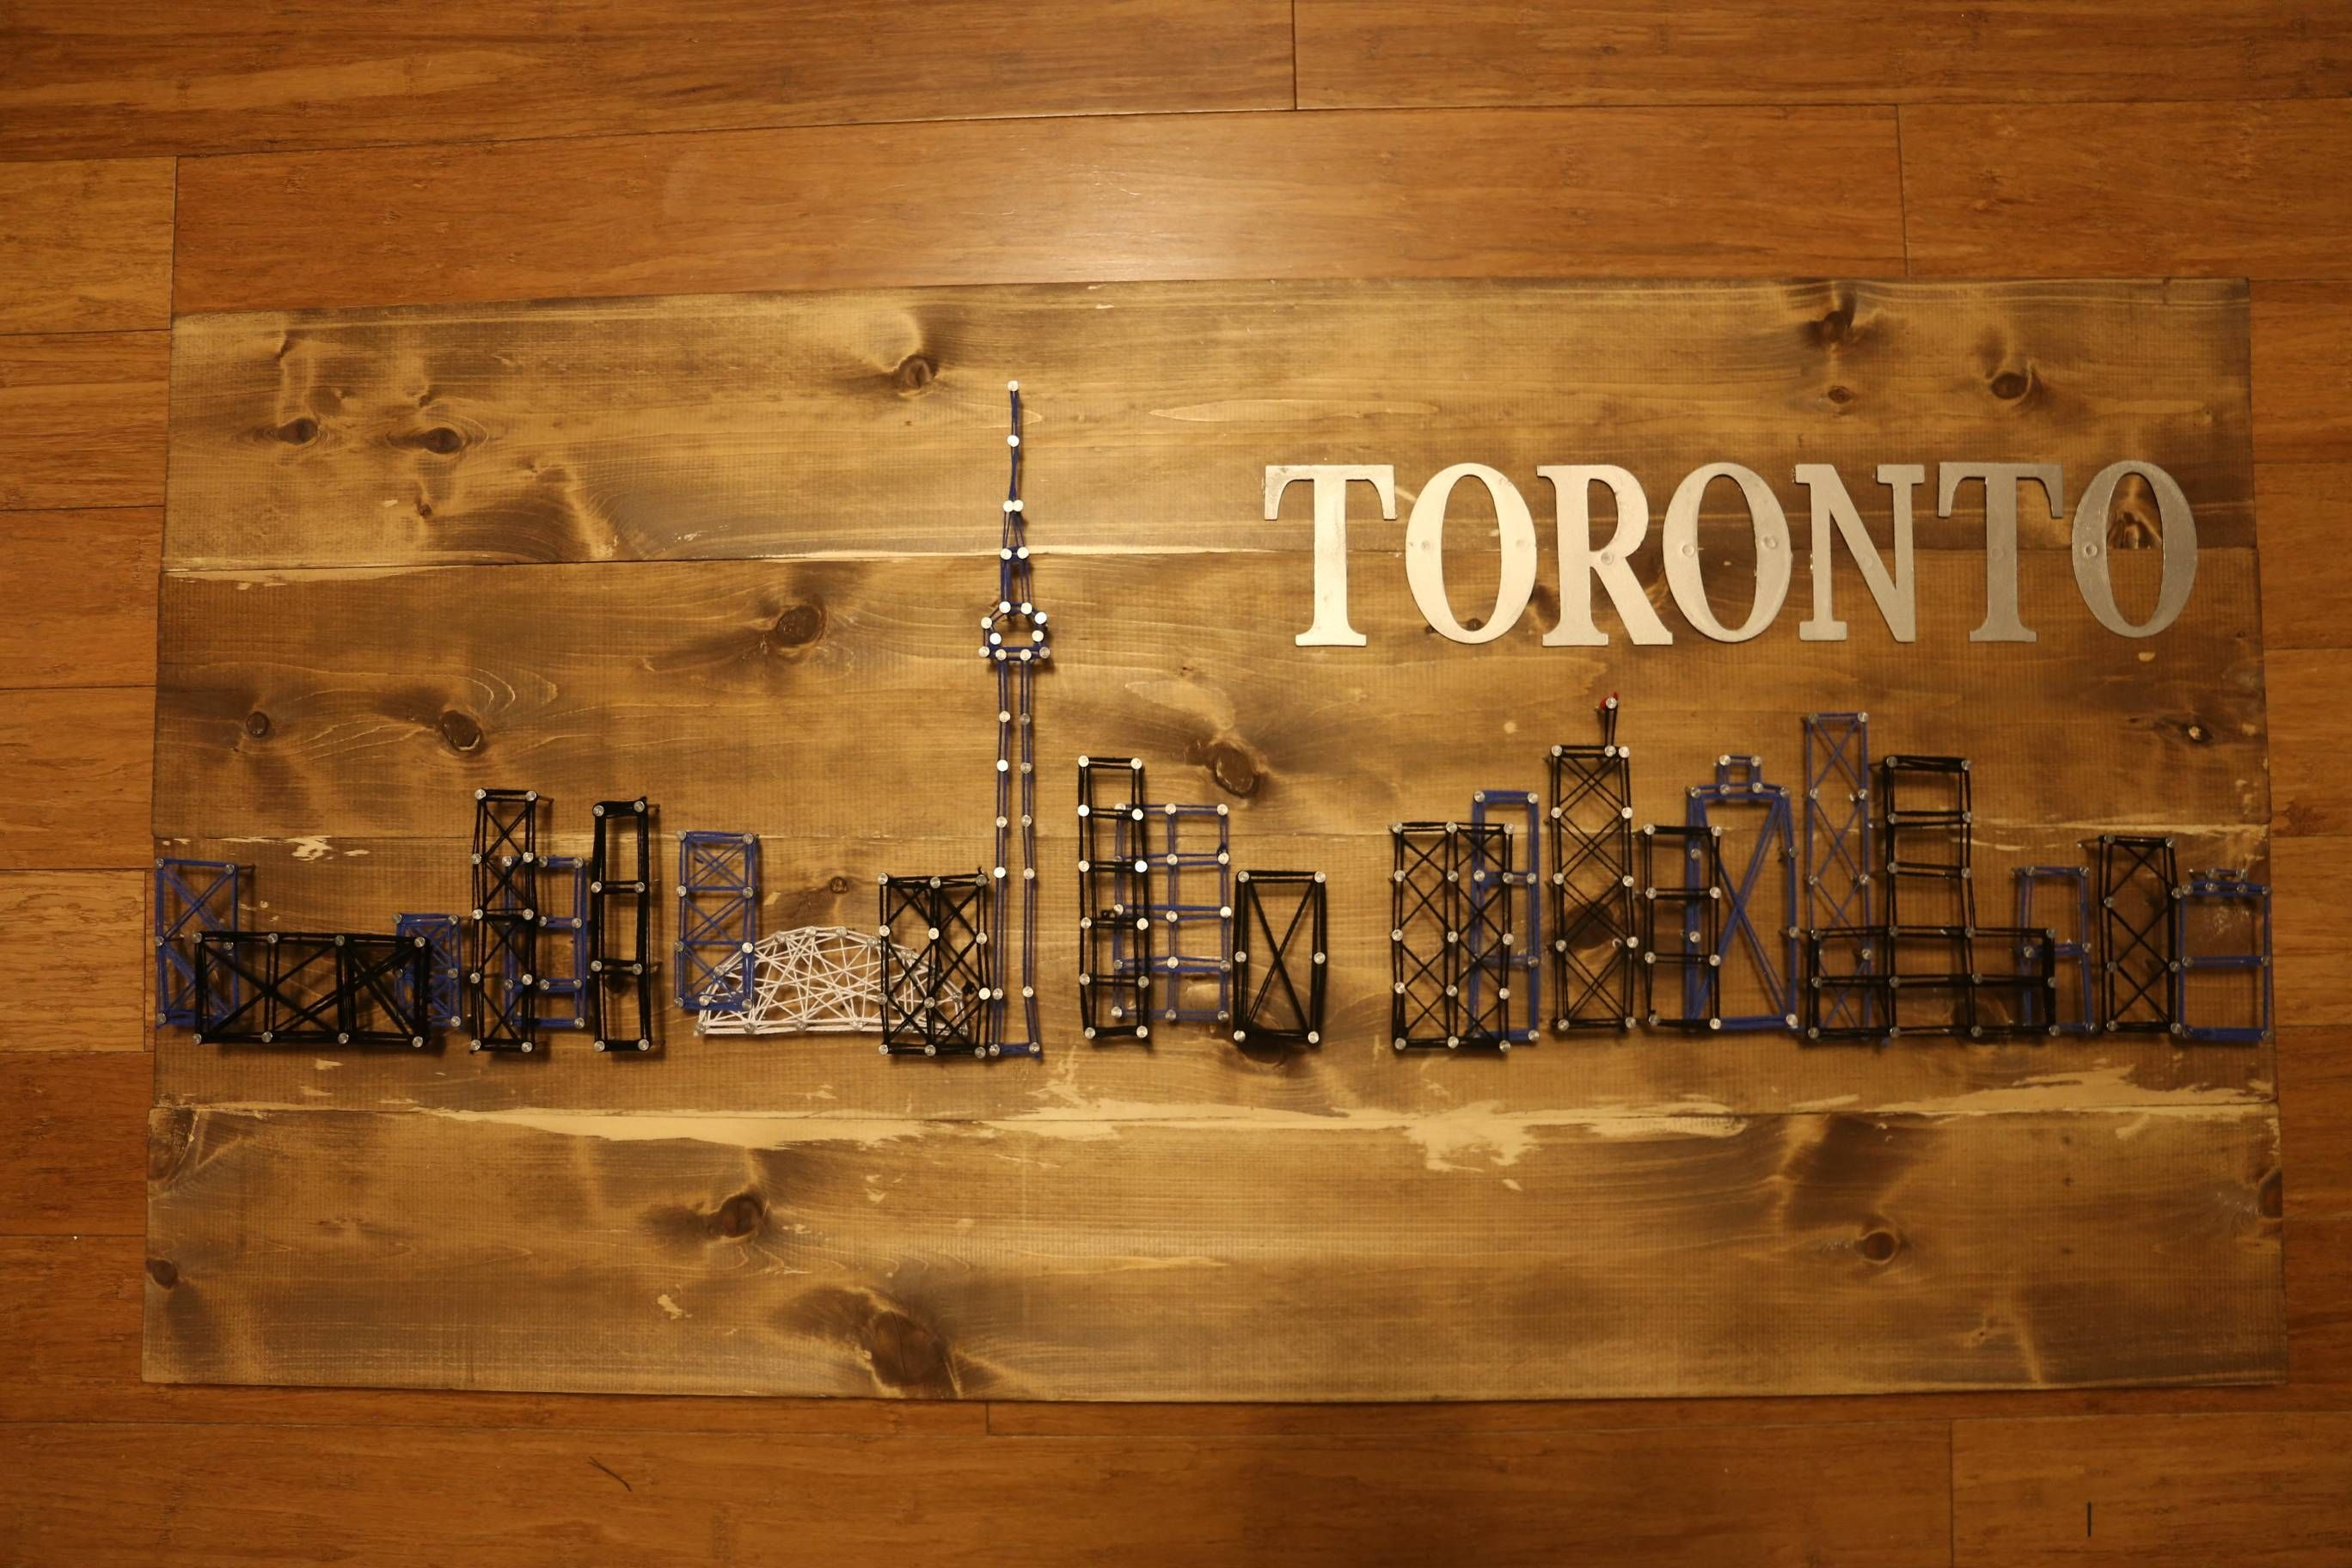 Toronto skyline string art quickcrafter best of diy toronto skyline string art quickcrafter solutioingenieria Image collections